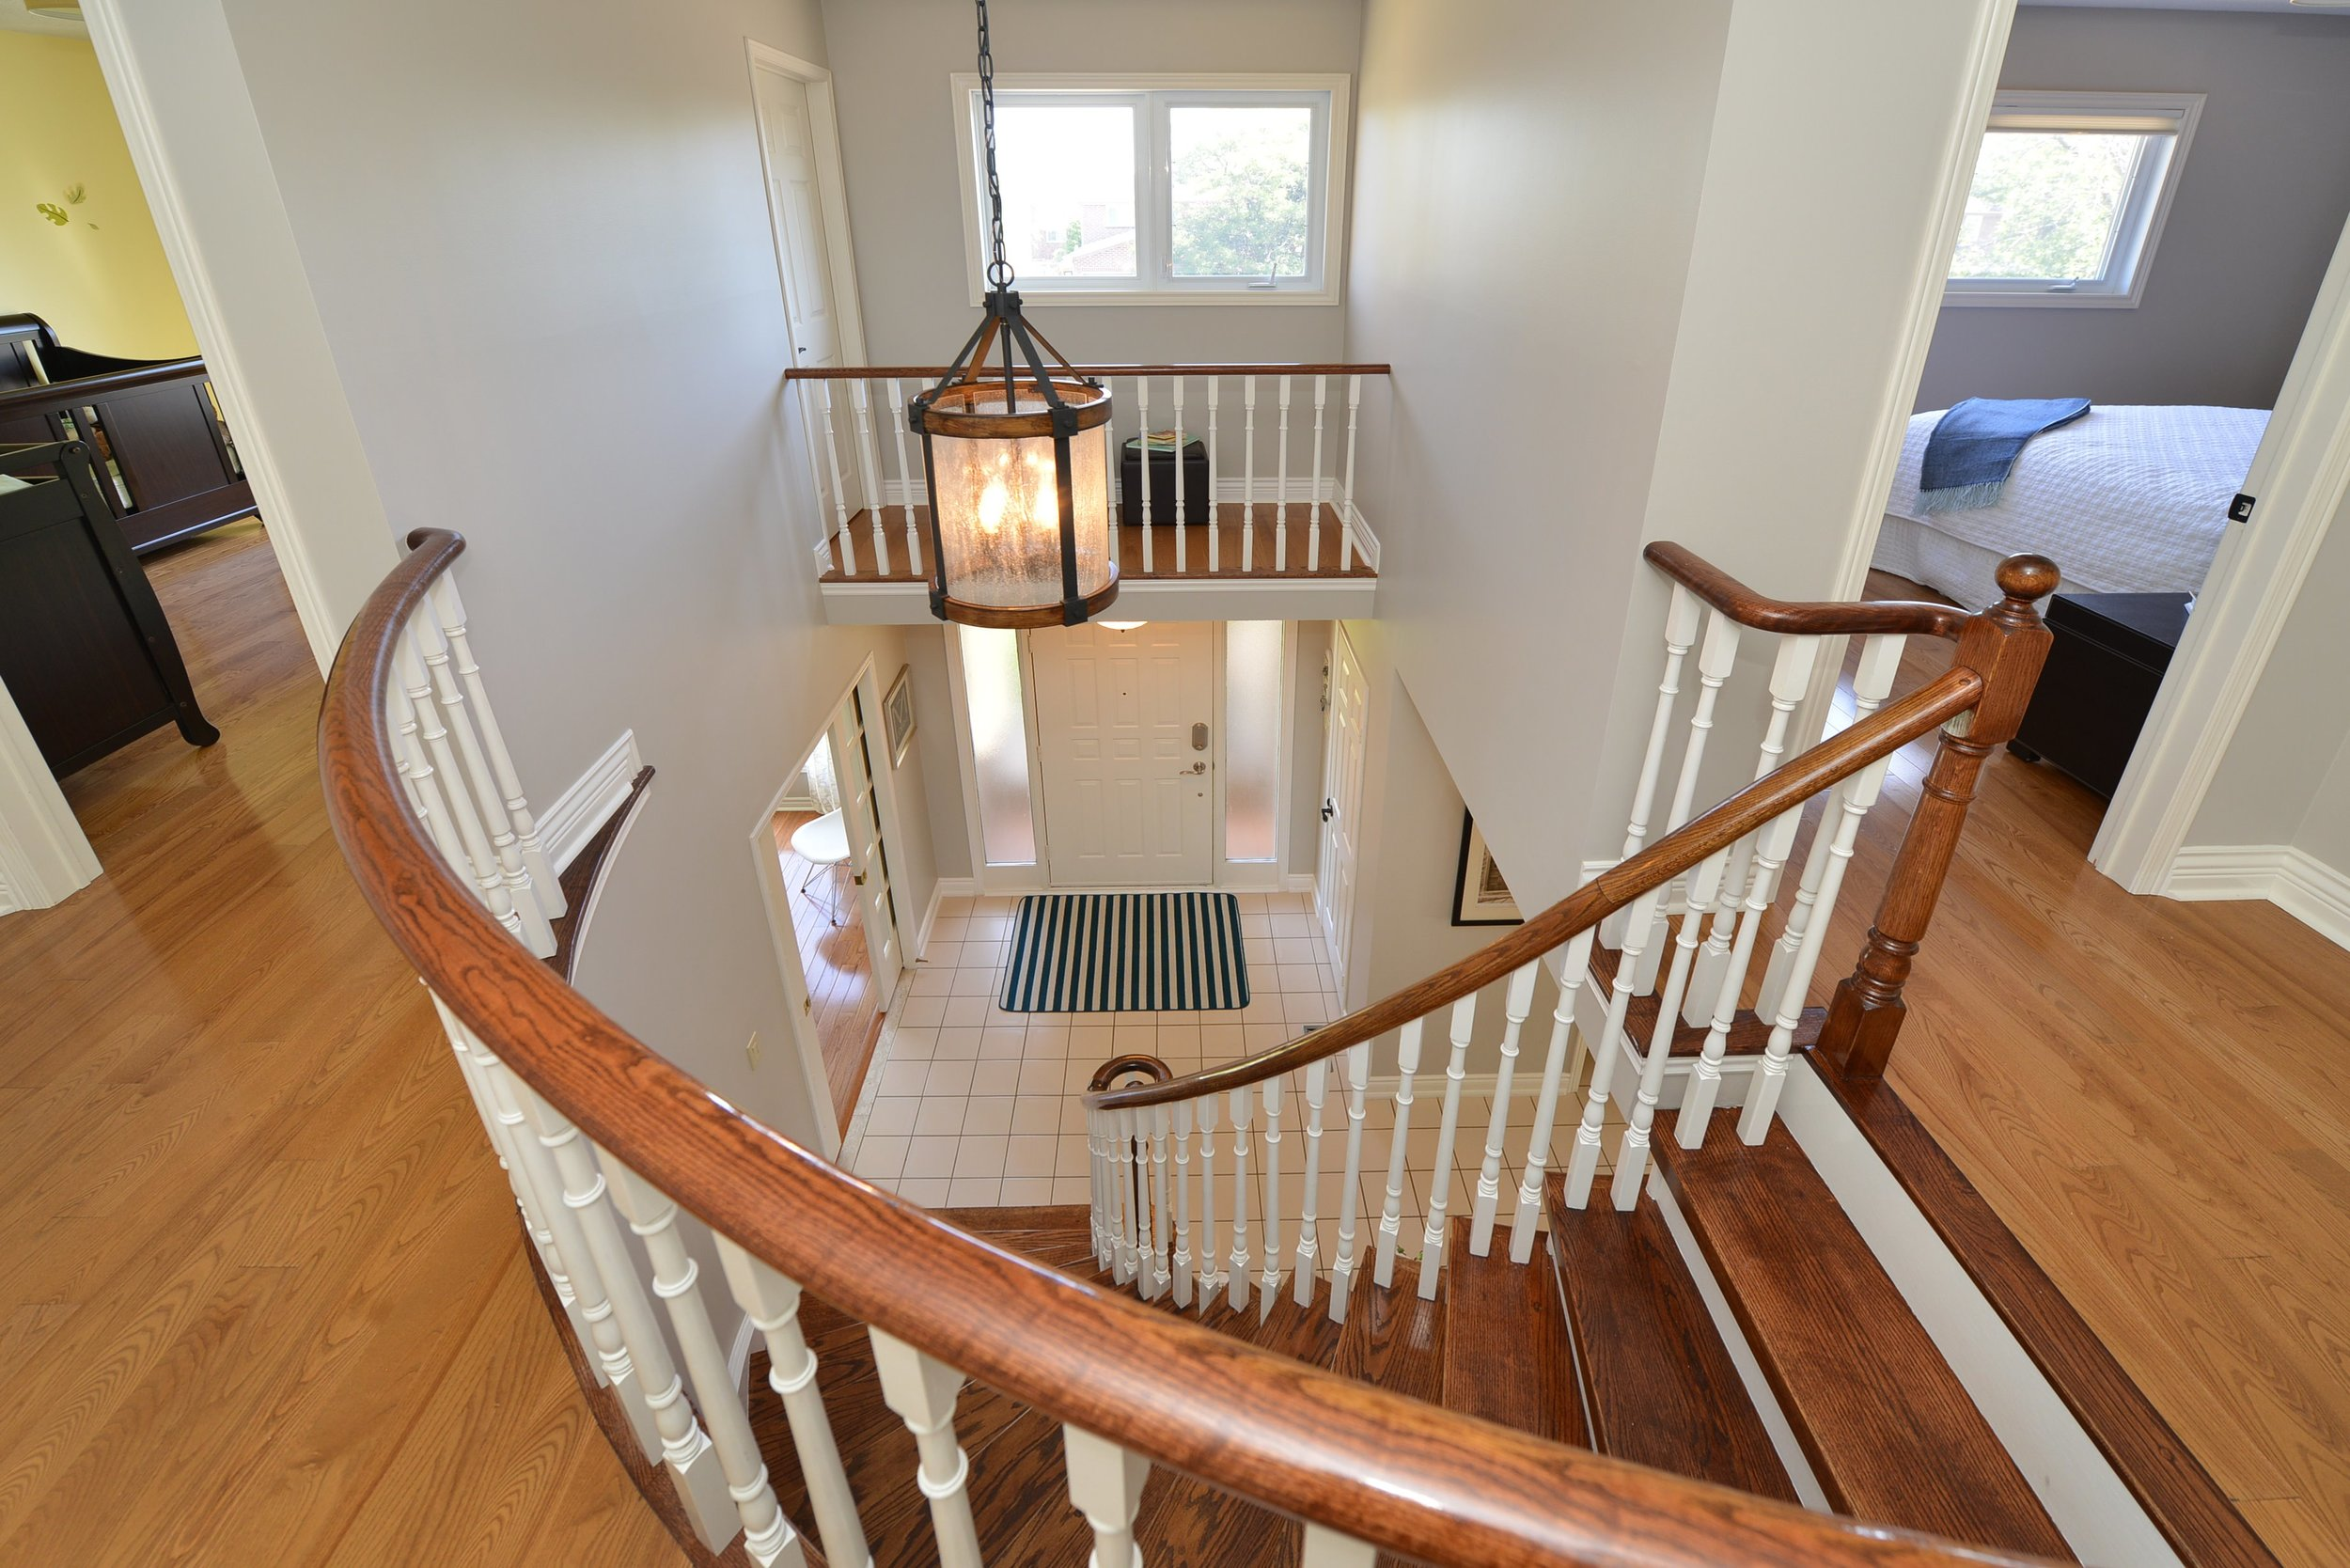 2767_guilford_crescent_MLS30538562_HID1121270_ROOMstairwell.jpg